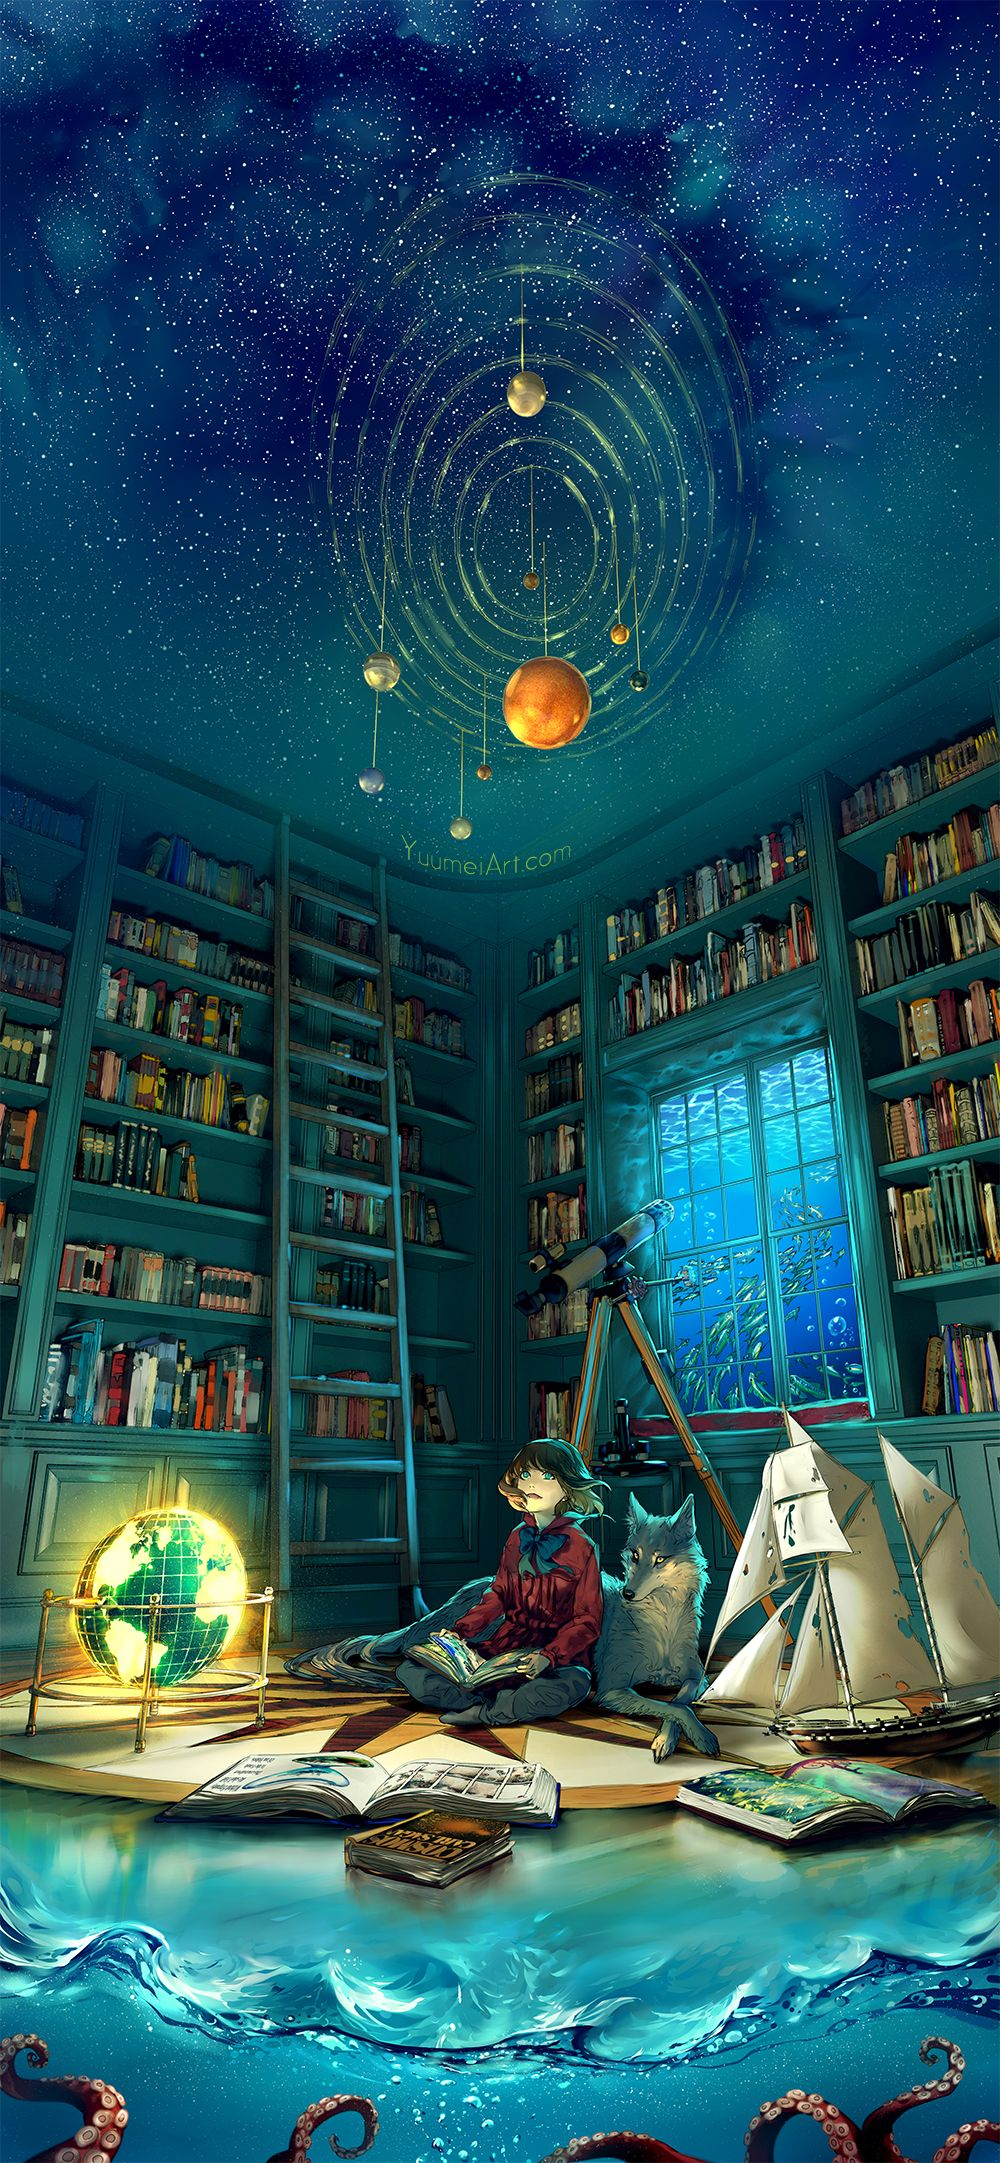 """""""Boundless"""" by yuumei.deviantart.com on @DeviantArt    'From the depth of the ocean/  To the limitless sky/  Open a book, open your mind/  This world is boundless/  So let your imagination fly' (attribution?)"""